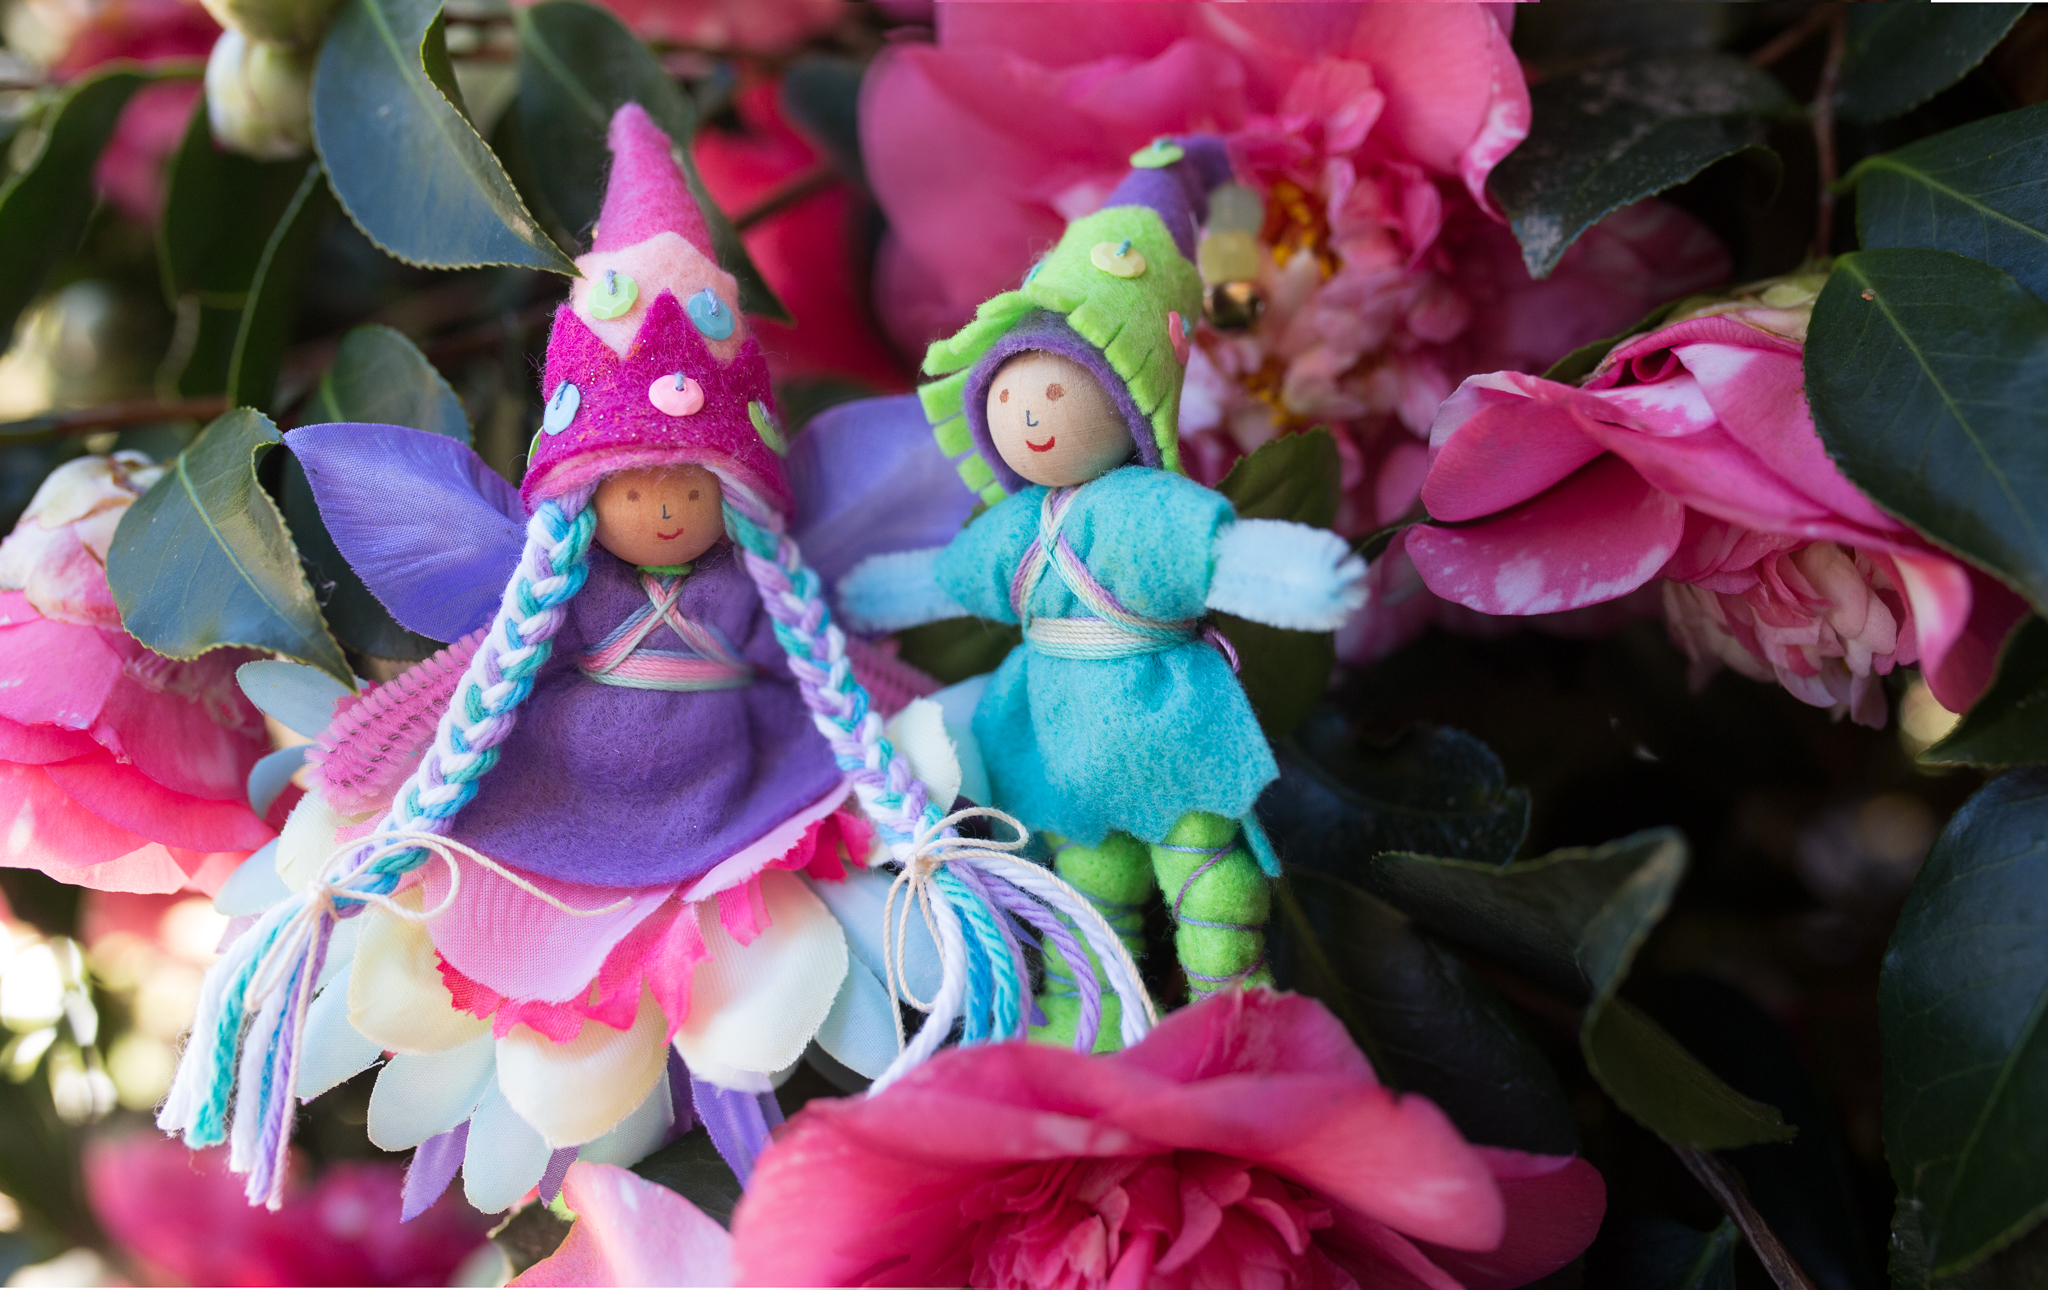 Spring Fairies | Bendy Dolls by Lenka Vodicka for Forest Fairy Crafts